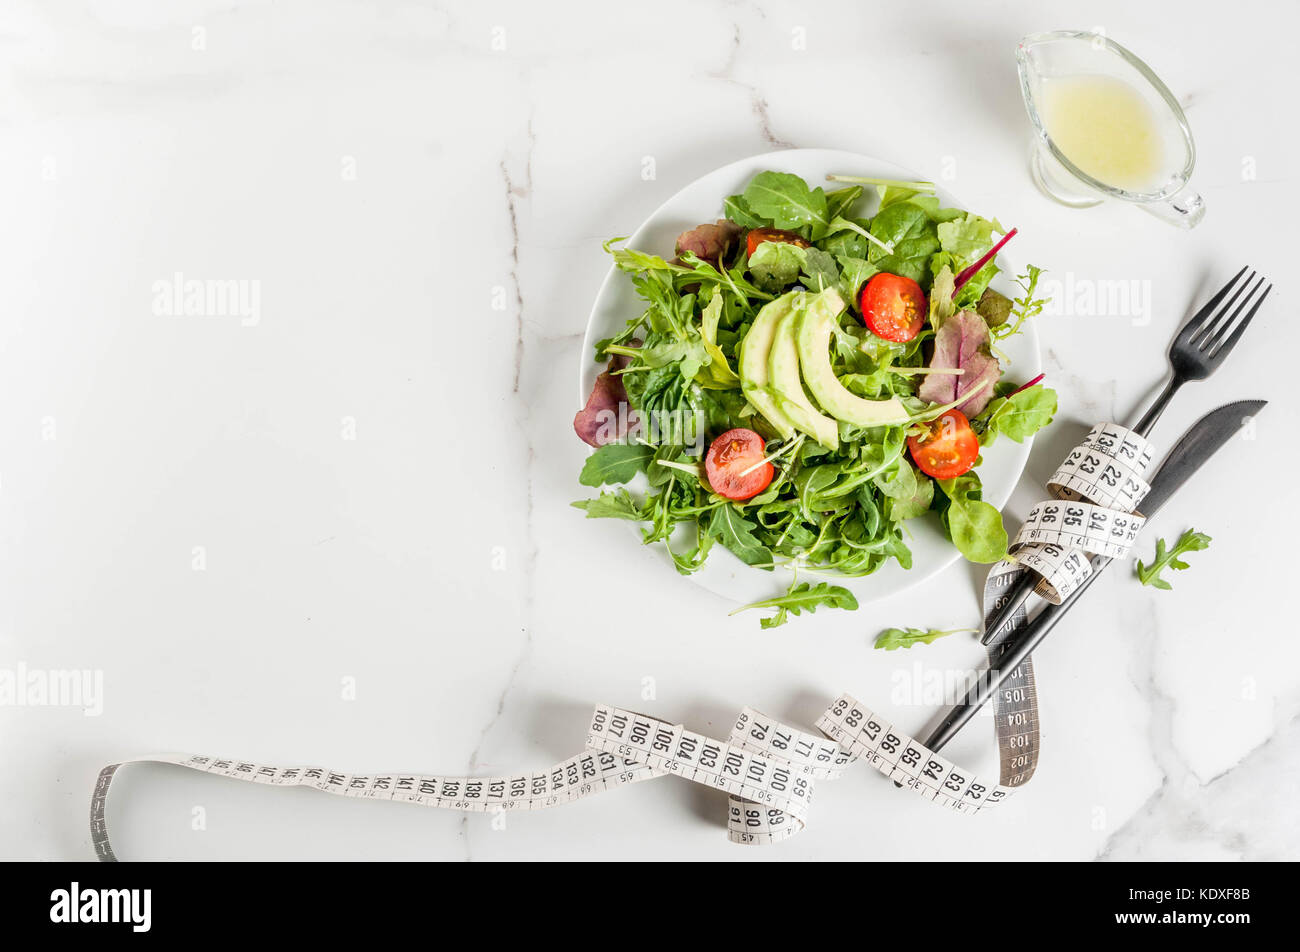 calorie counting photos & calorie counting images - alamy